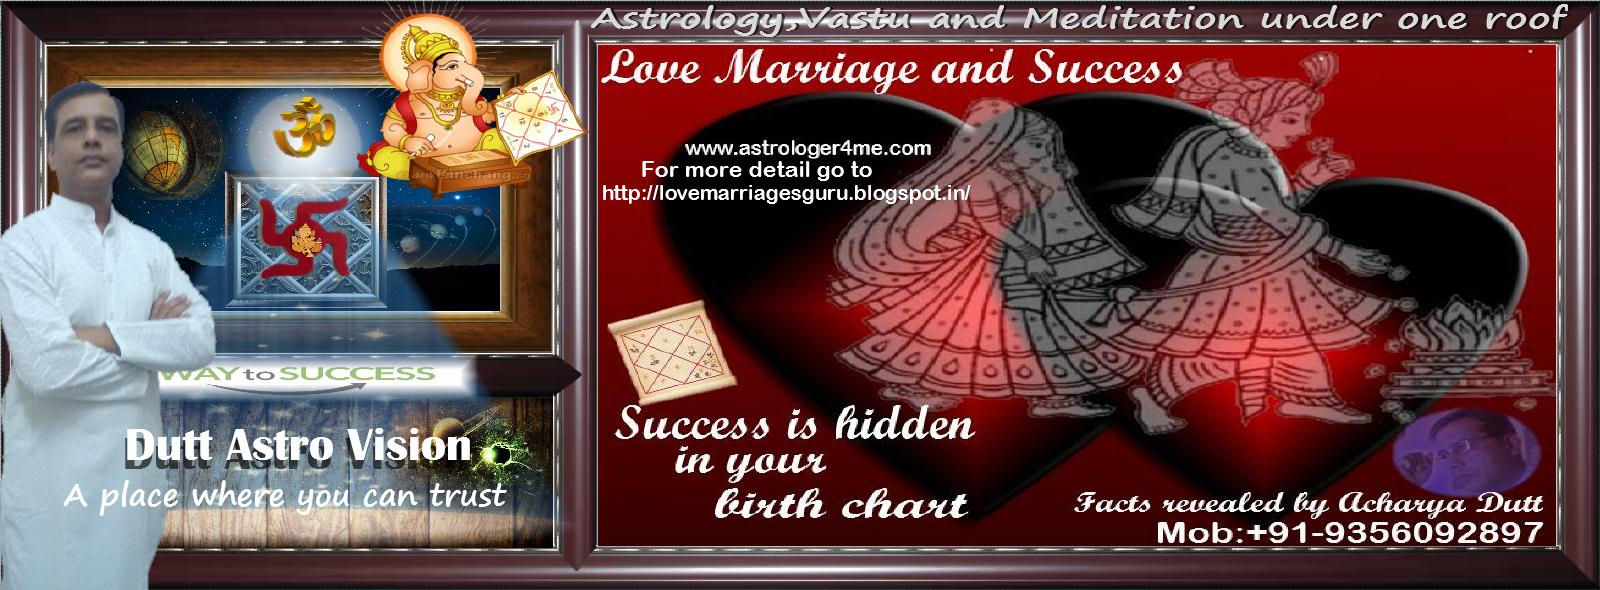 SUCCESS CHANCE OF LOVE MARRIAGE IS HIDDEN IN BIRTH CHART